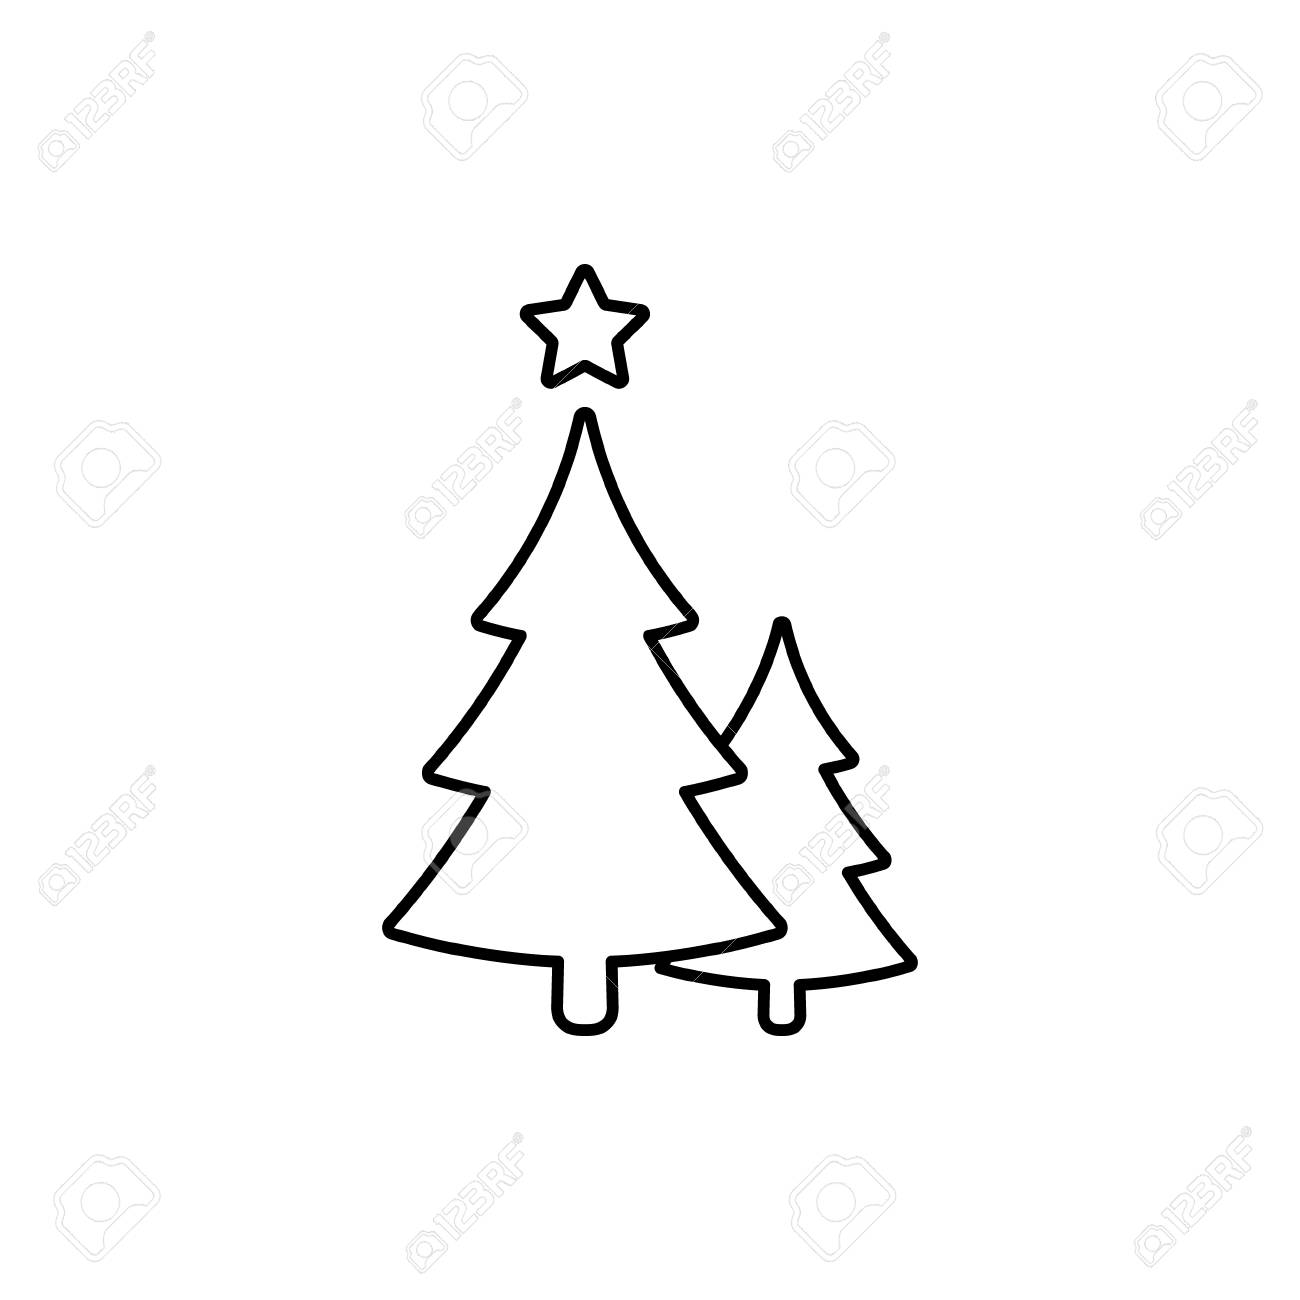 Christmas Trees Line Icon Vector Black Outline Symbol Of Two